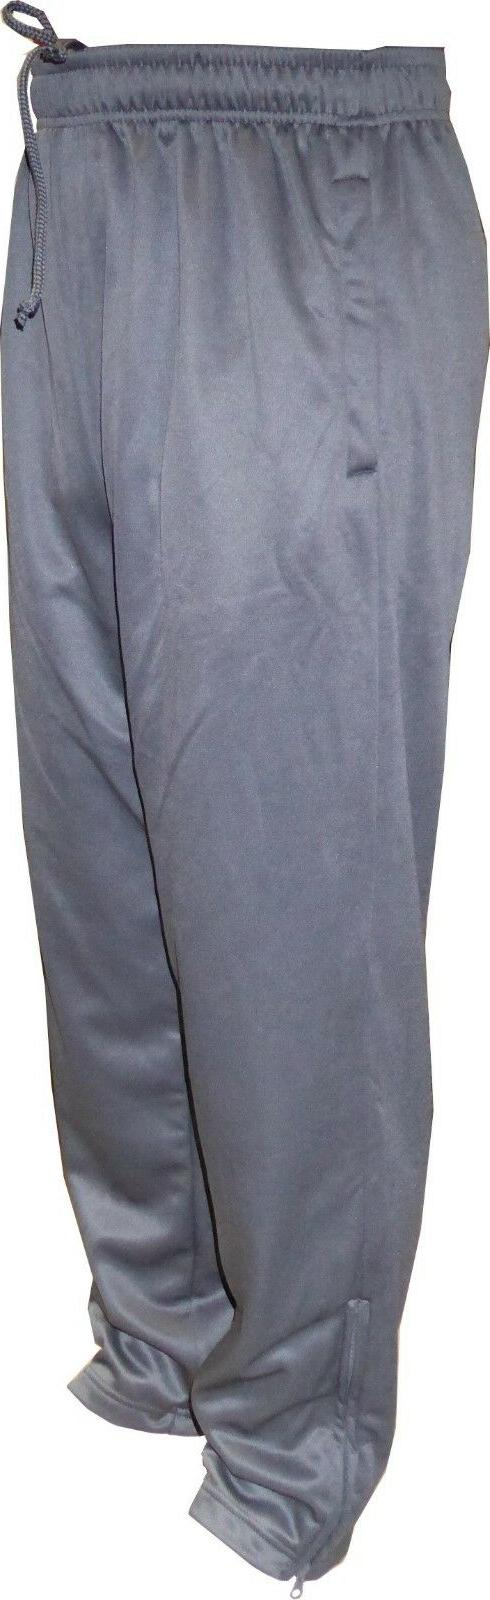 adult performance joggers sweatpants zippers pockets